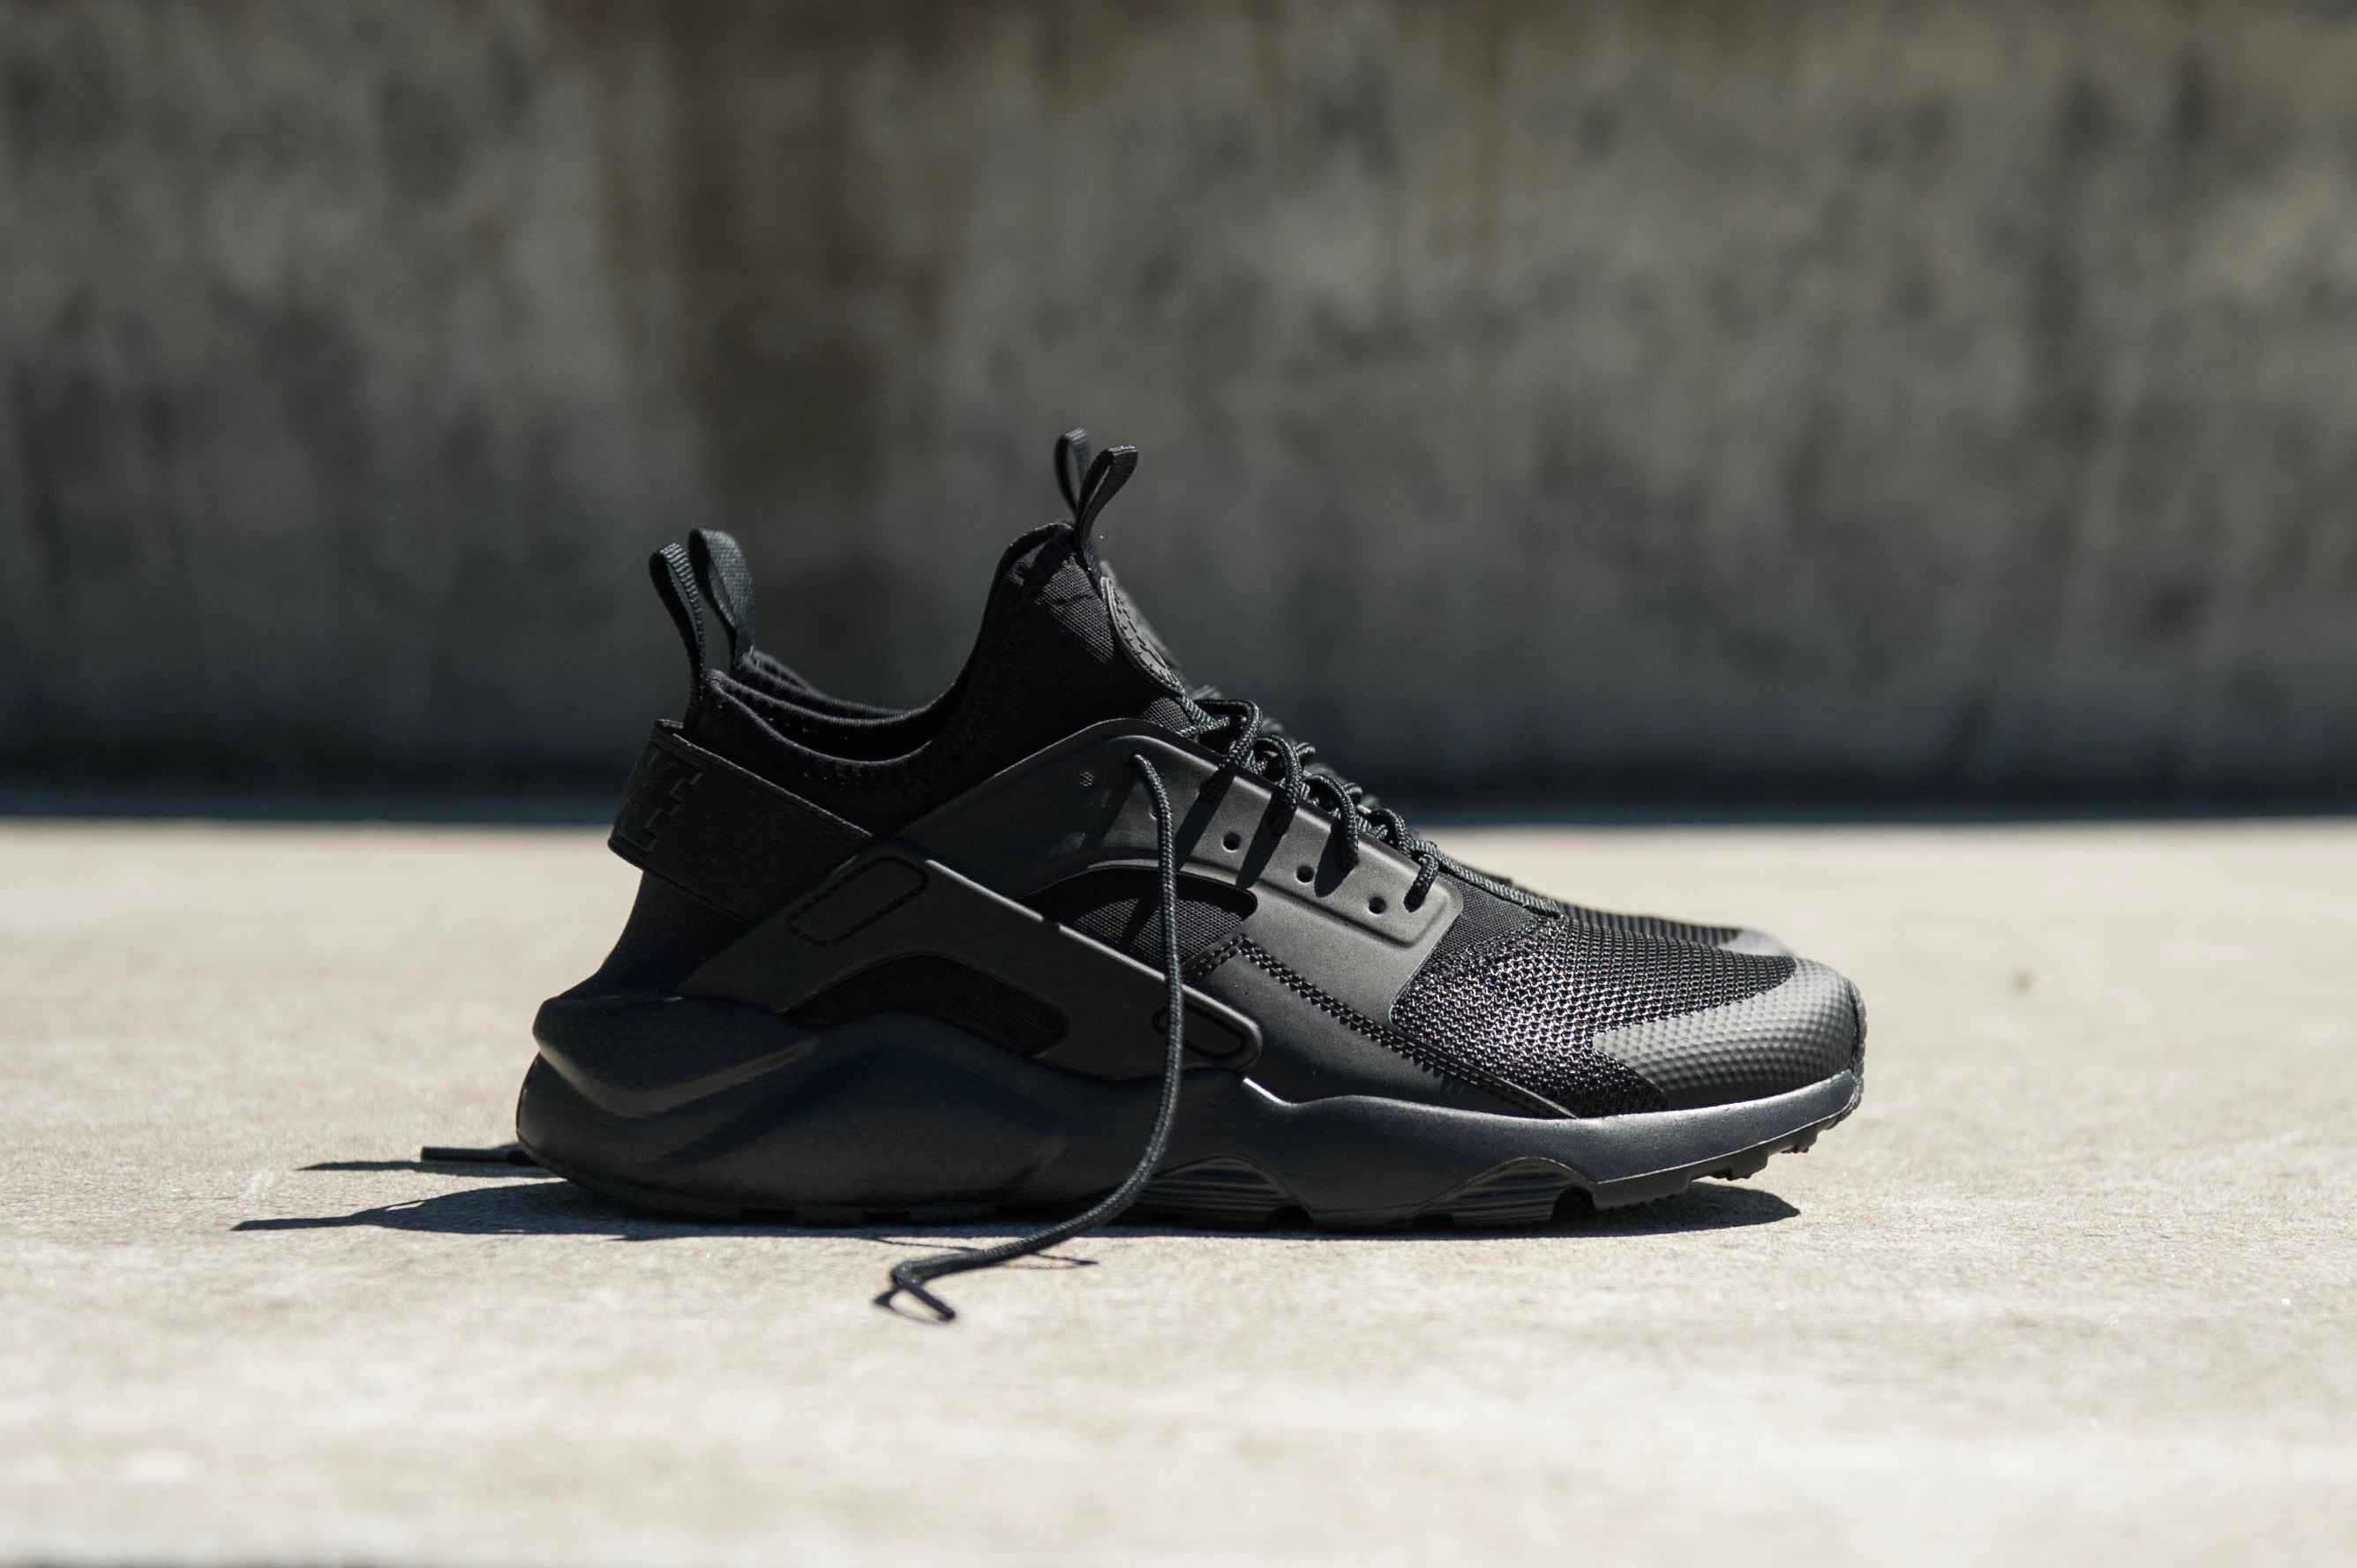 competitive price 1e5b6 a5462 Nike Air Huarache Run Ultra - Black / Black / Black